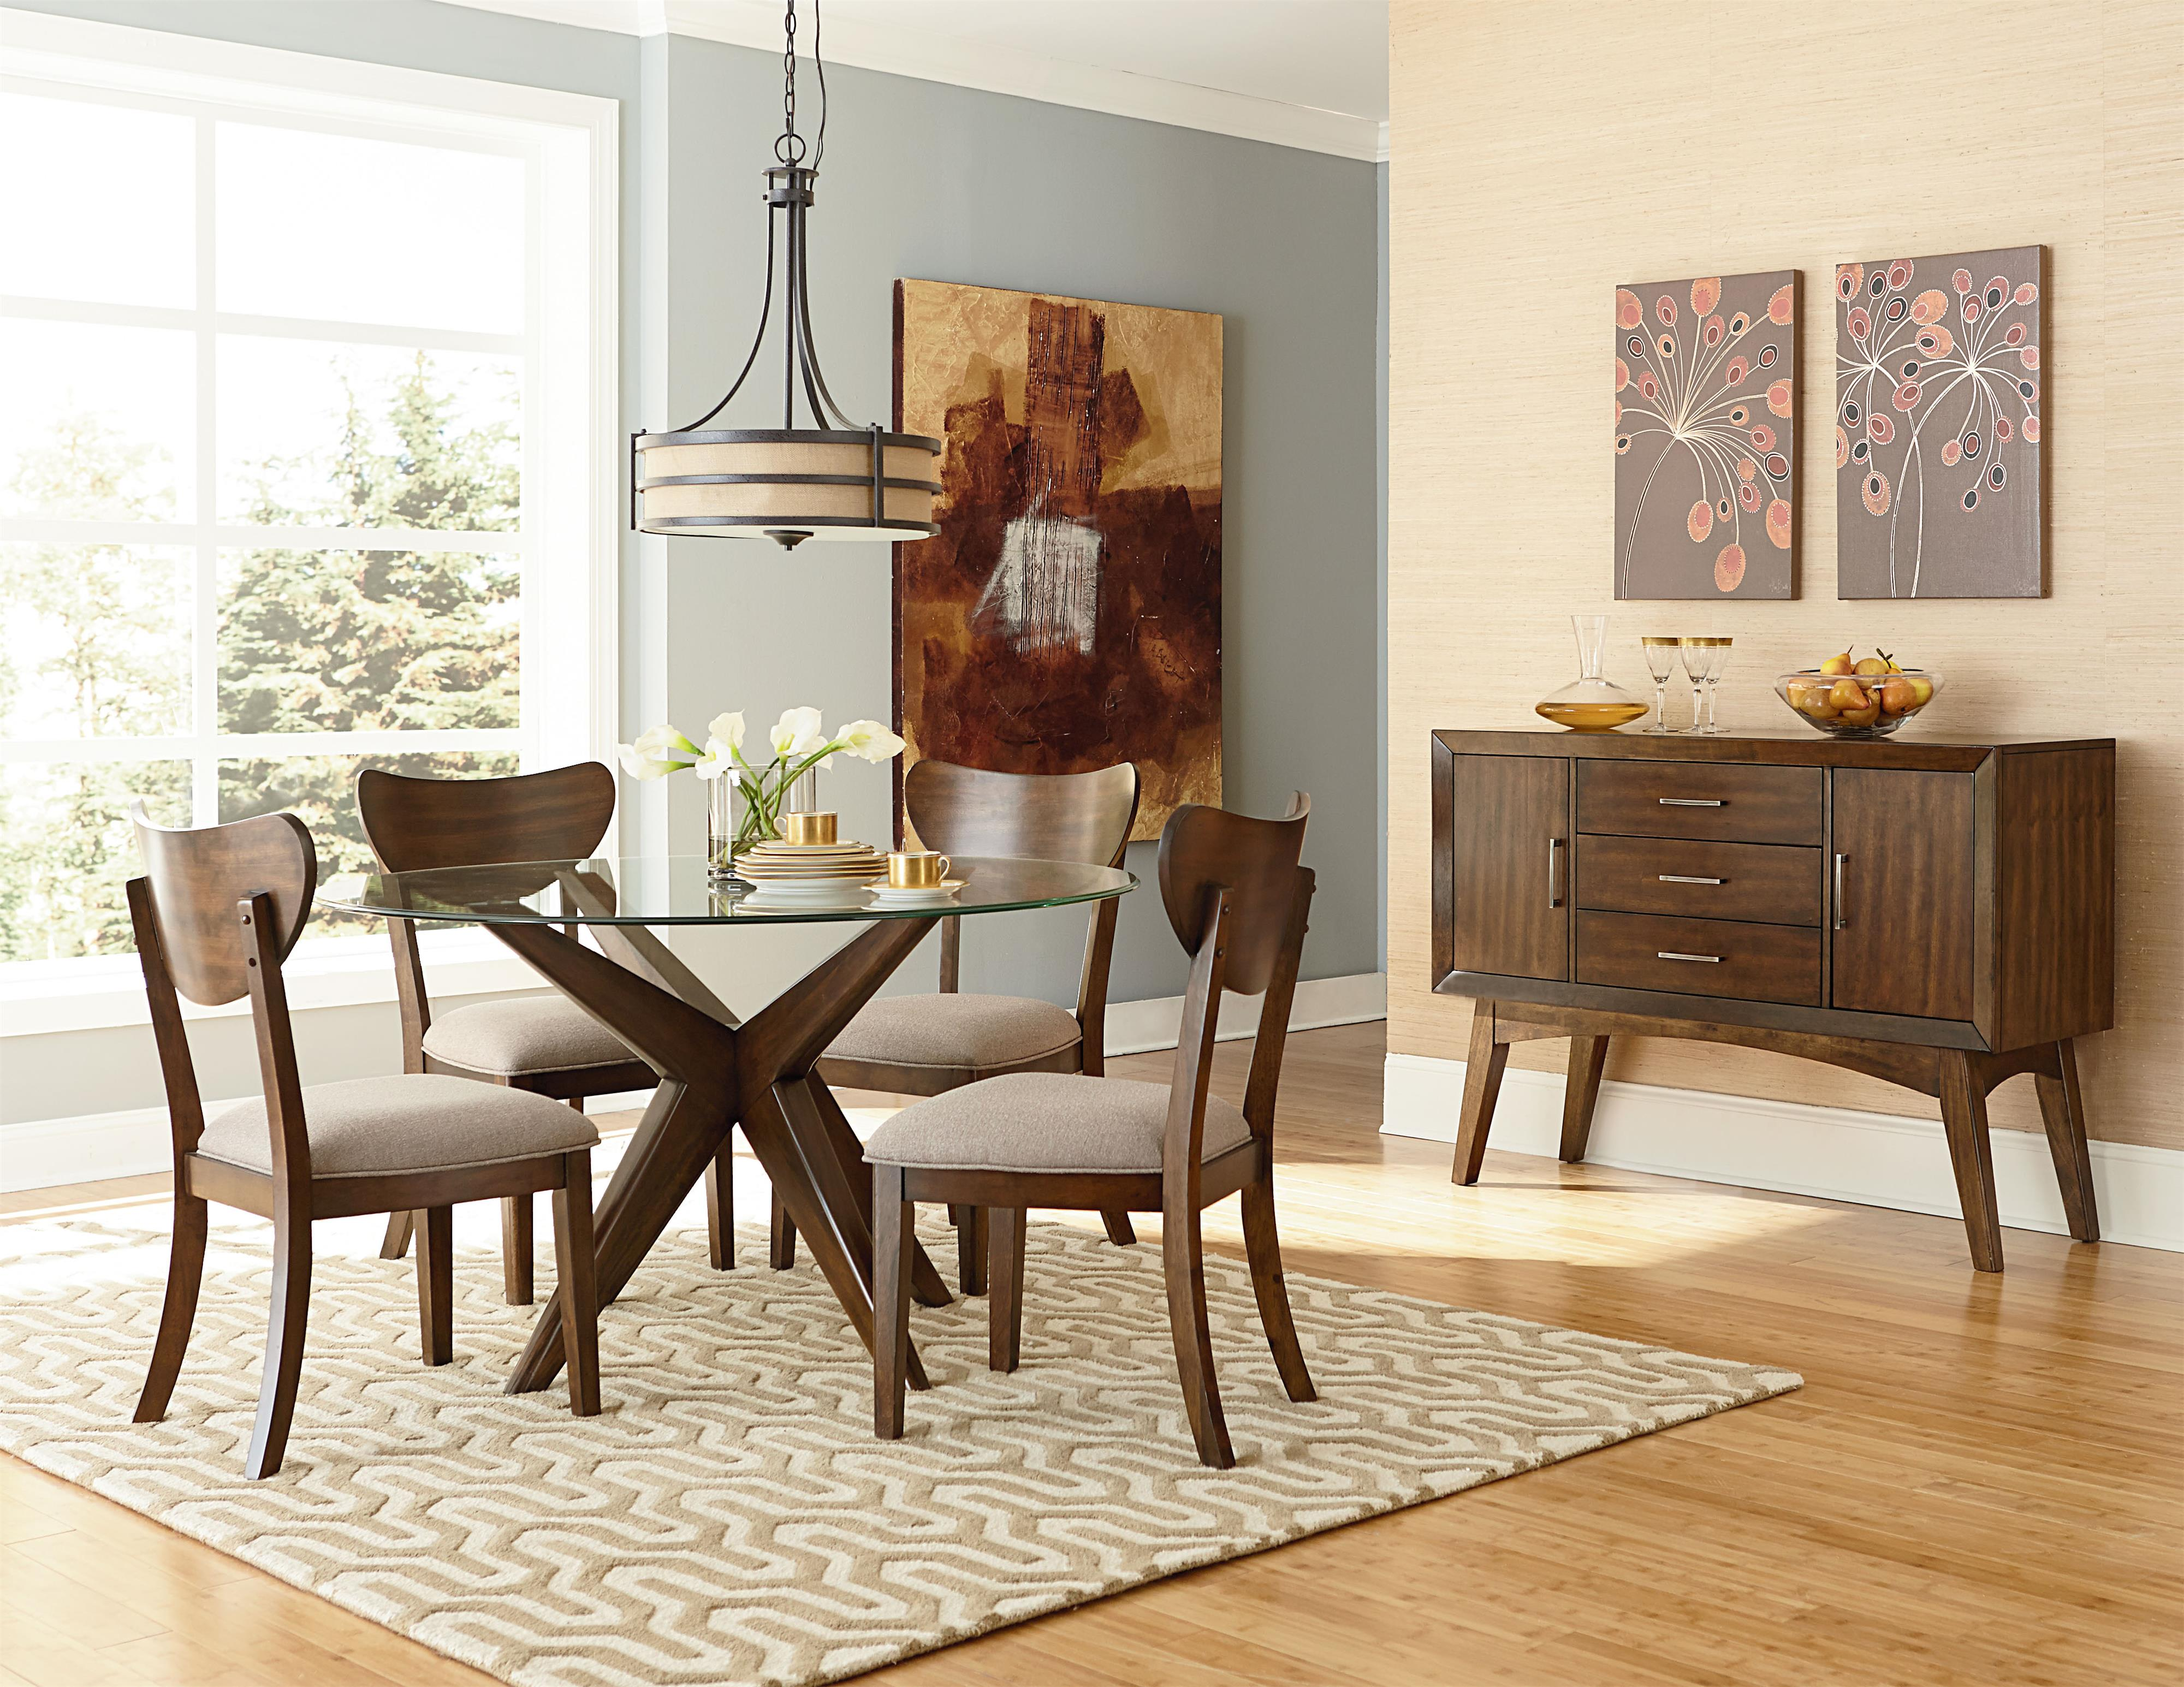 Standard Furniture Roxbury Casual Dining Room Group - Item Number: 16200 Dining Room Group 3